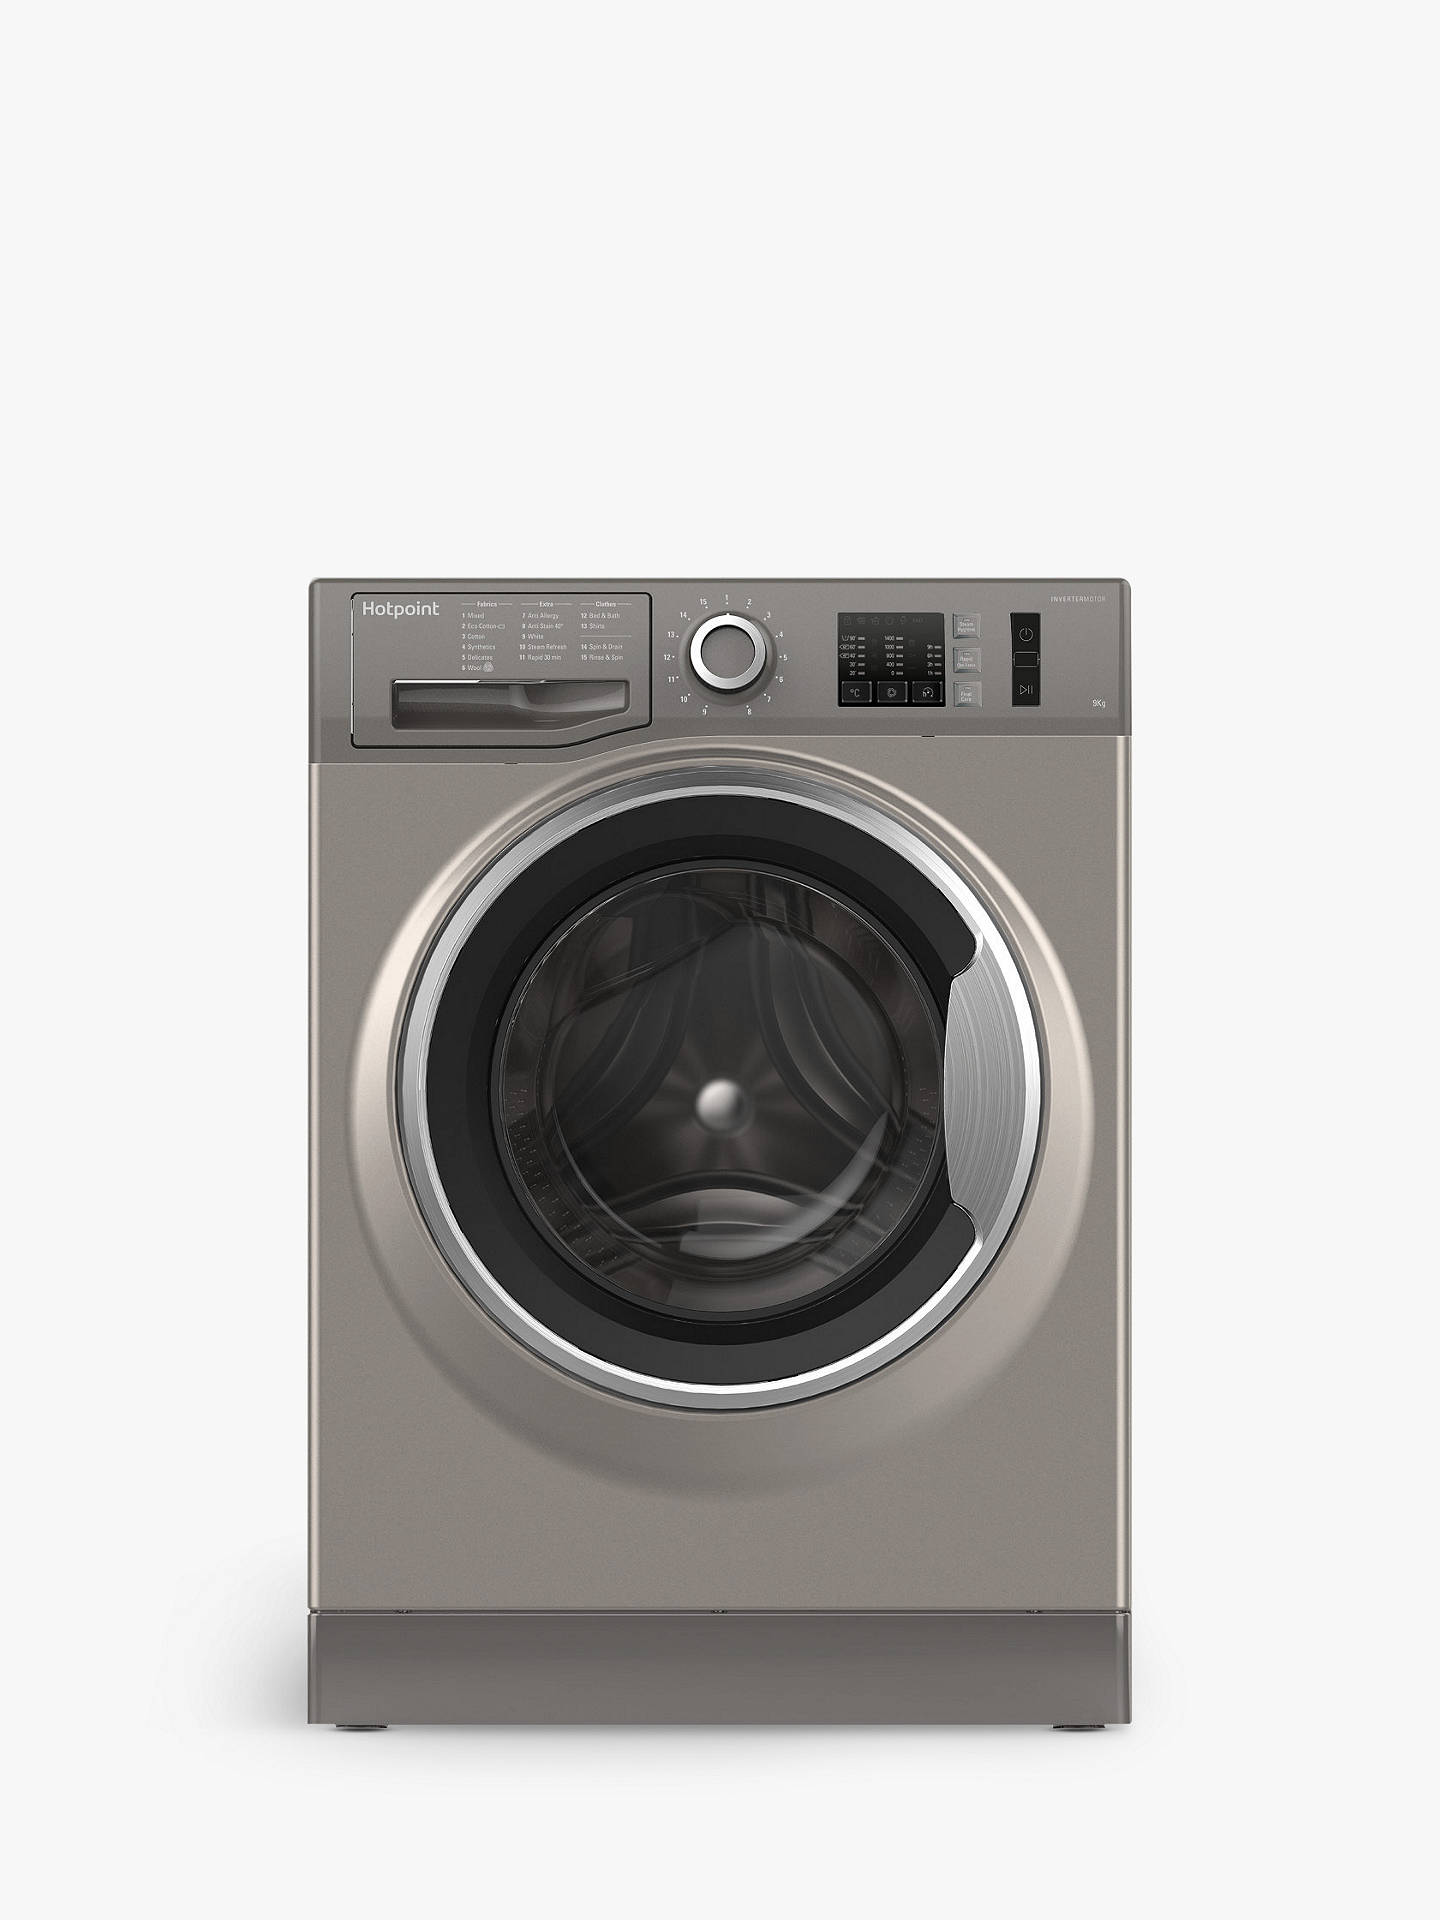 Buy Hotpoint NM10944GSUK Freestanding Washing Machine, 9kg Load, A+++ Energy Rating, 1400rpm Spin, Graphite Online at johnlewis.com